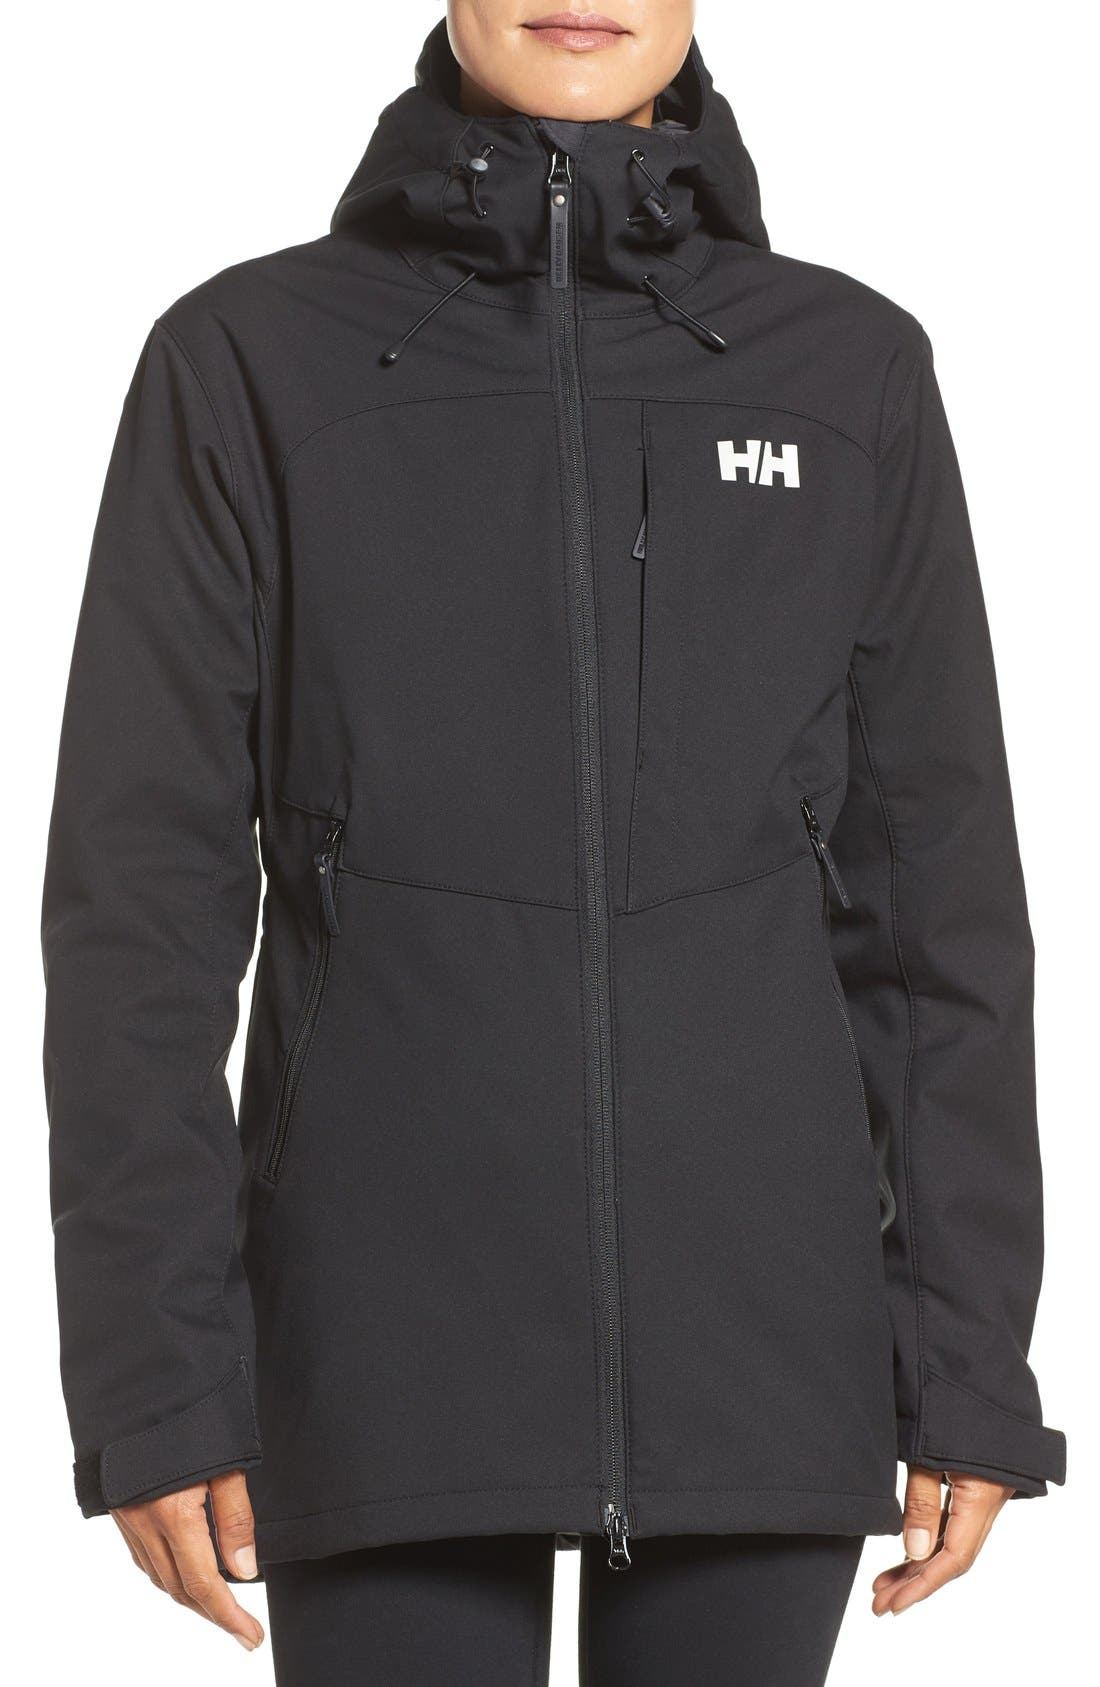 Helly Hansen 'Paramount' Water Repellent Softshell Parka